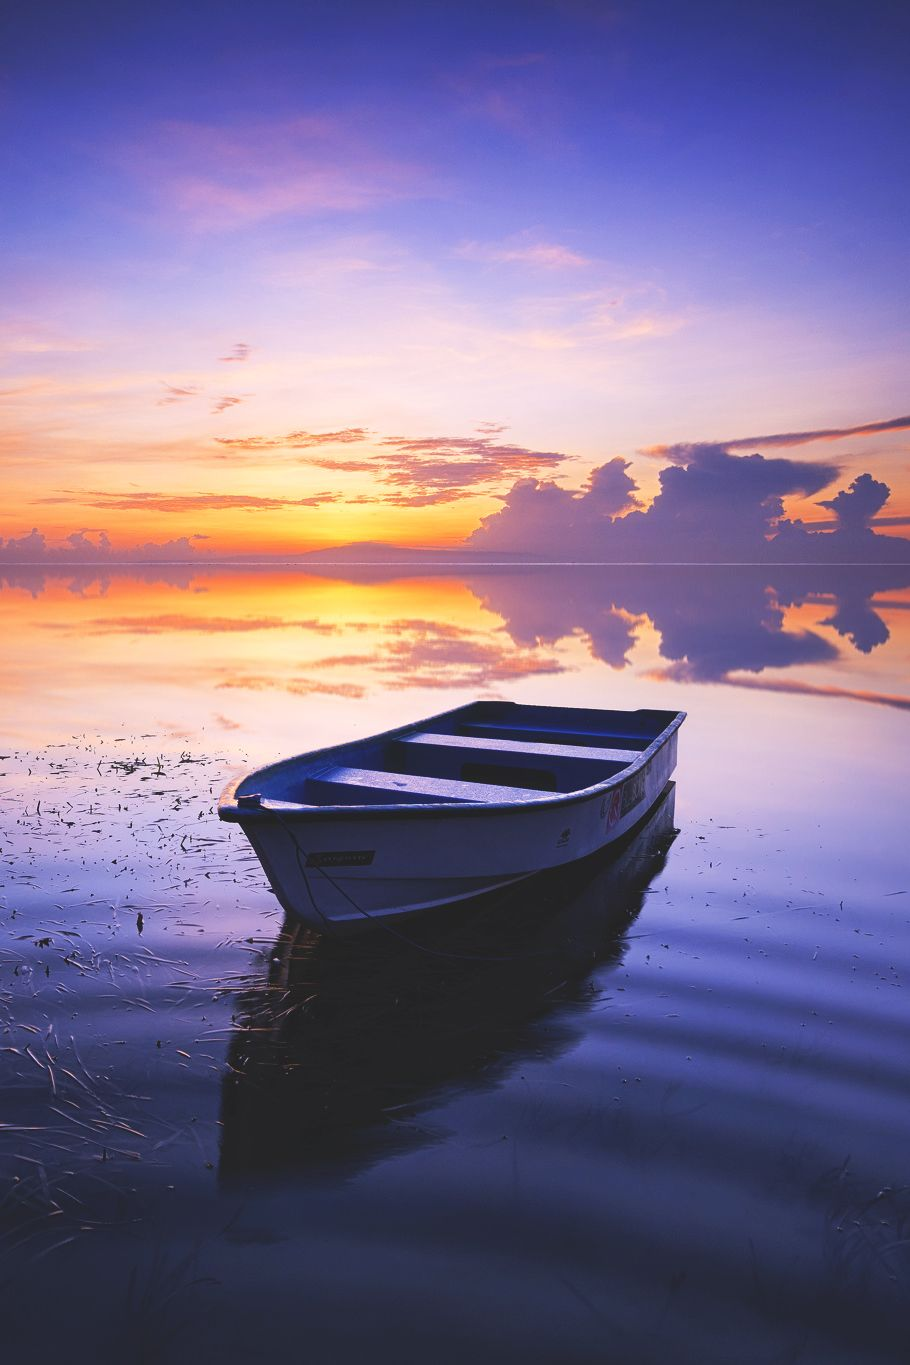 Pin by Panks Pat on Art Boat painting, Amazing sunsets, Boat